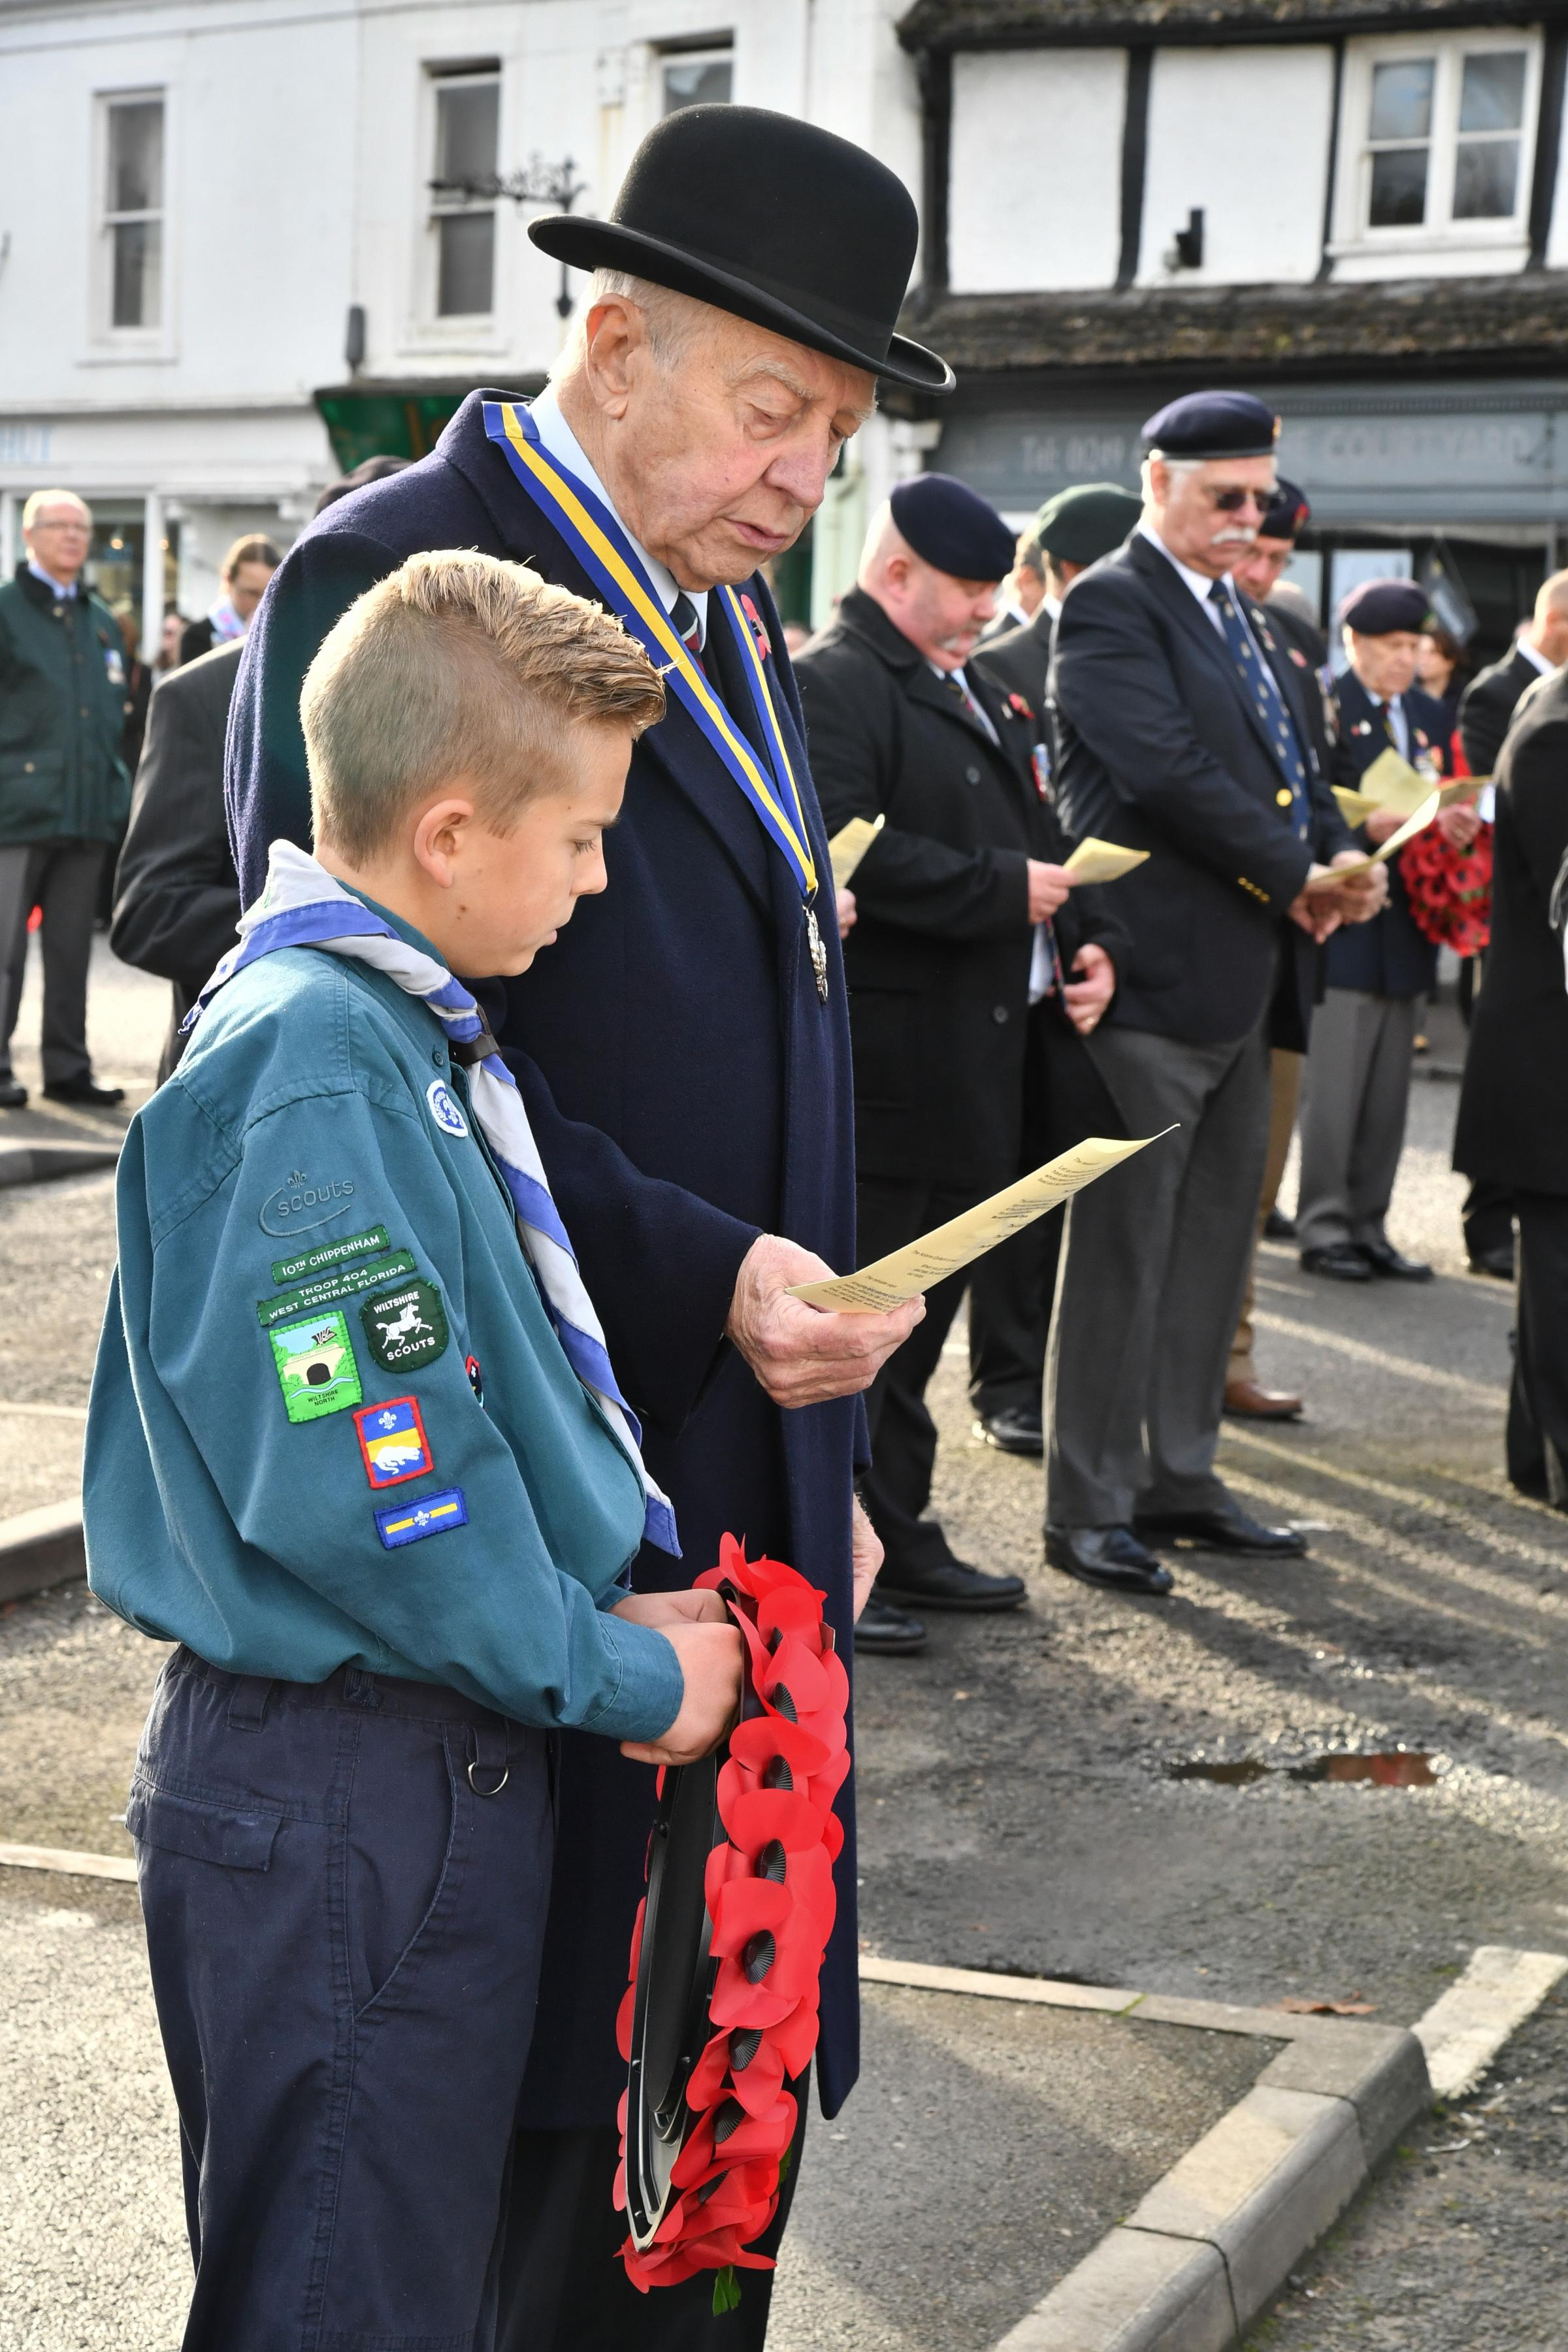 10th Chippenham Scout, Toby Bridgeman-Daw with the President of the Royal British Legion, Jim Scott in 2016